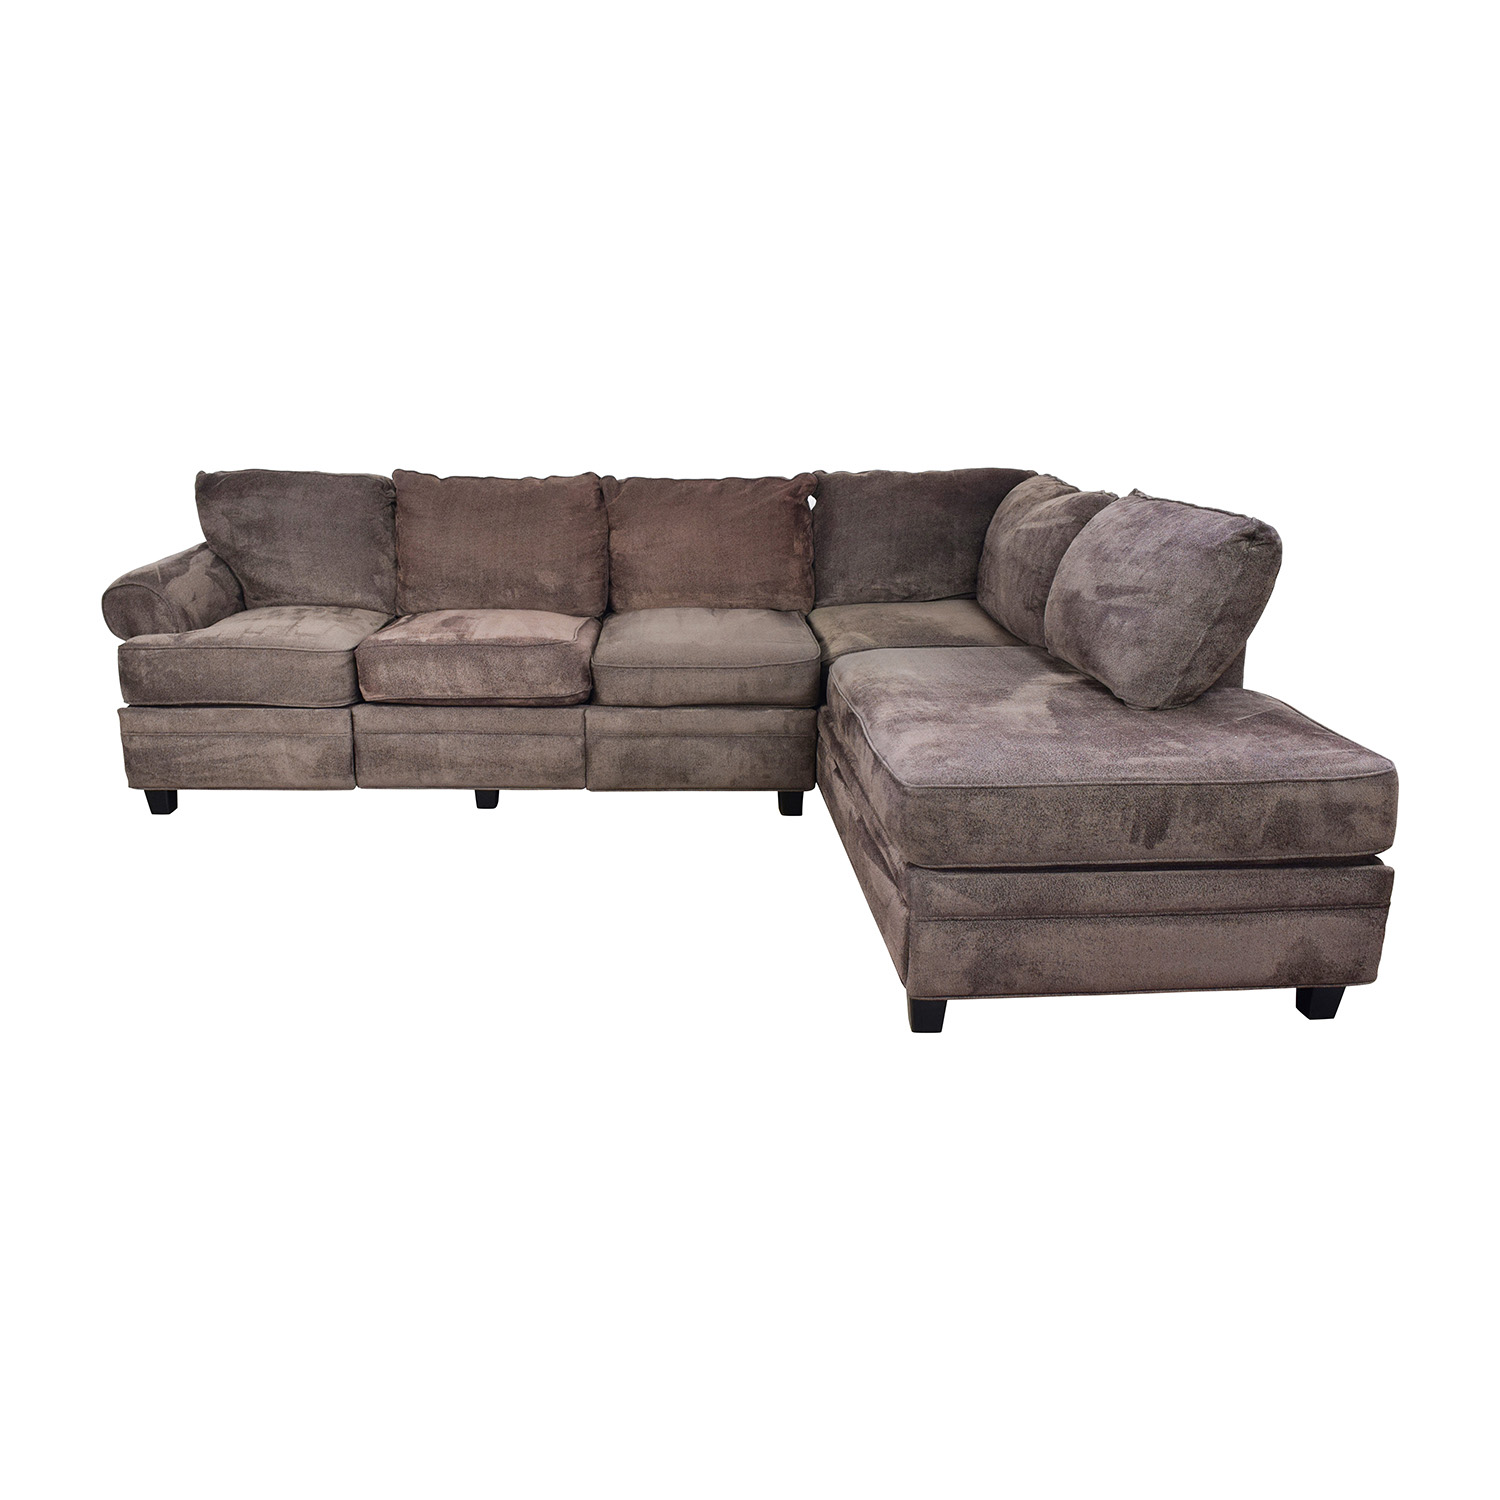 55 off bob s discount furniture bob s furniture brown sectional with storage sofas